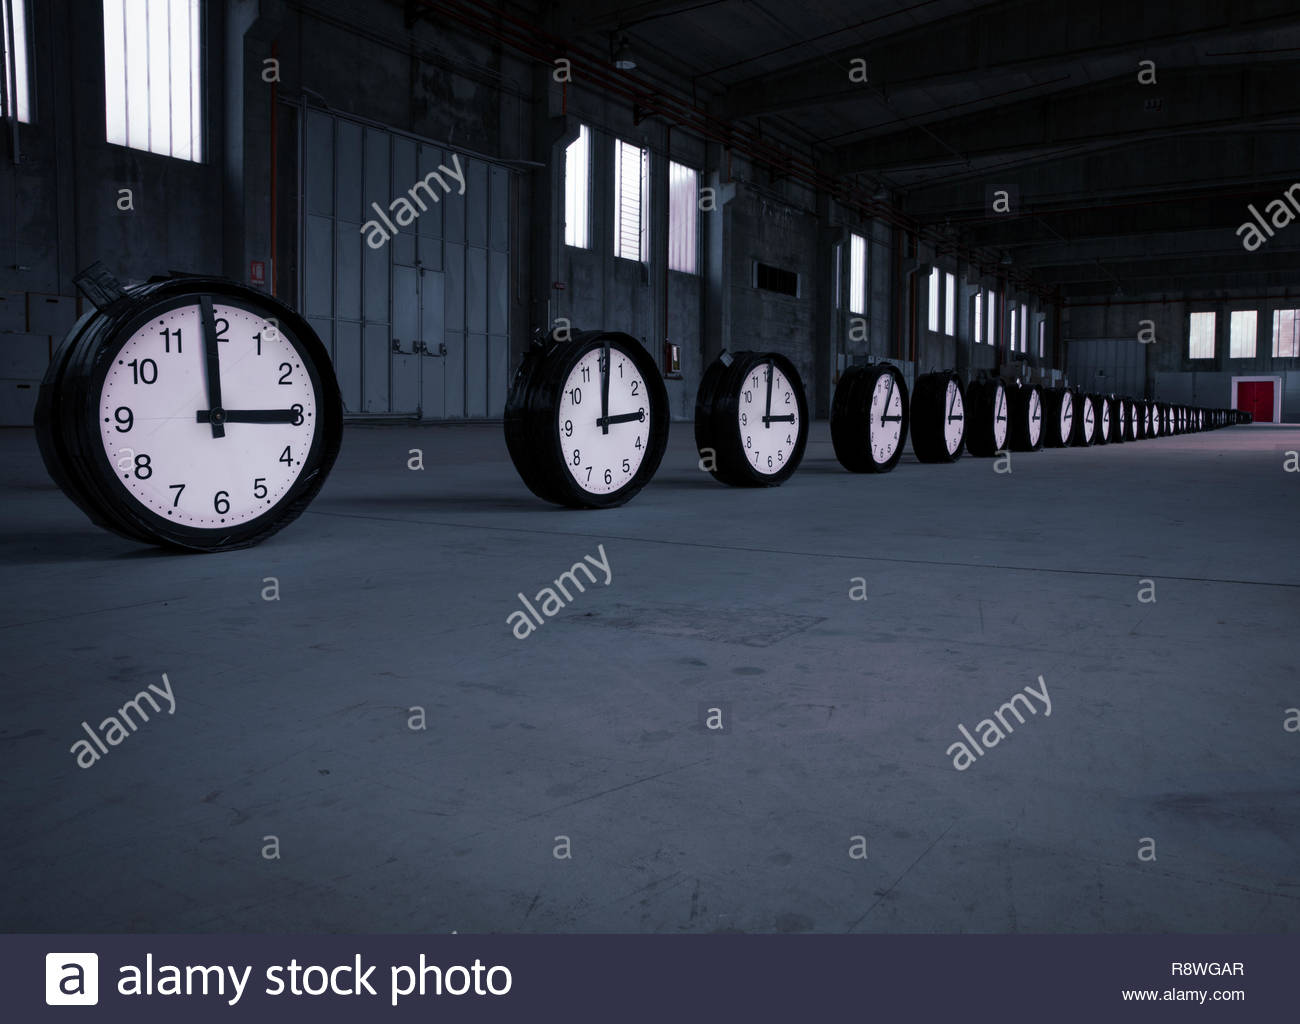 Fifty black clocks with hands on 3 o'clock are placed in a oblique row pointing to a double red door in an empty factory. - Stock Image